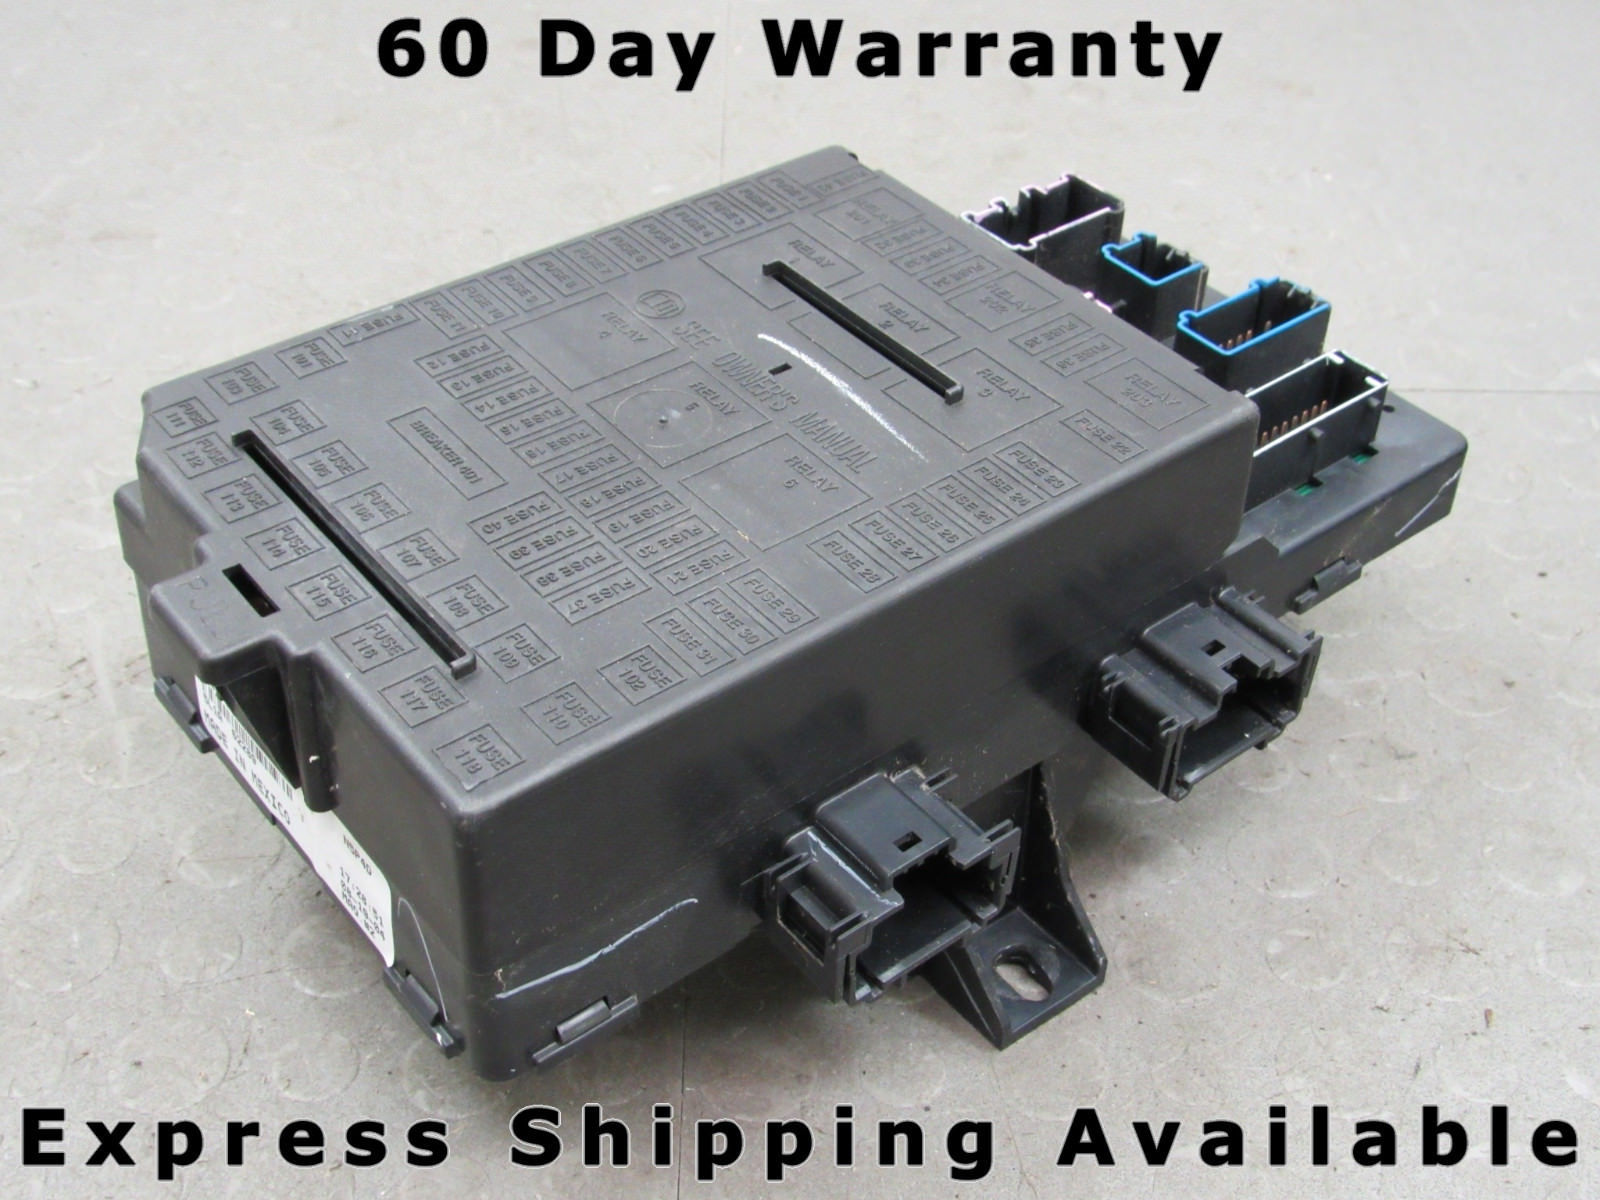 hight resolution of 05 expedition navigator interior fuse relay box block center 5l1t 14a067 ac ad